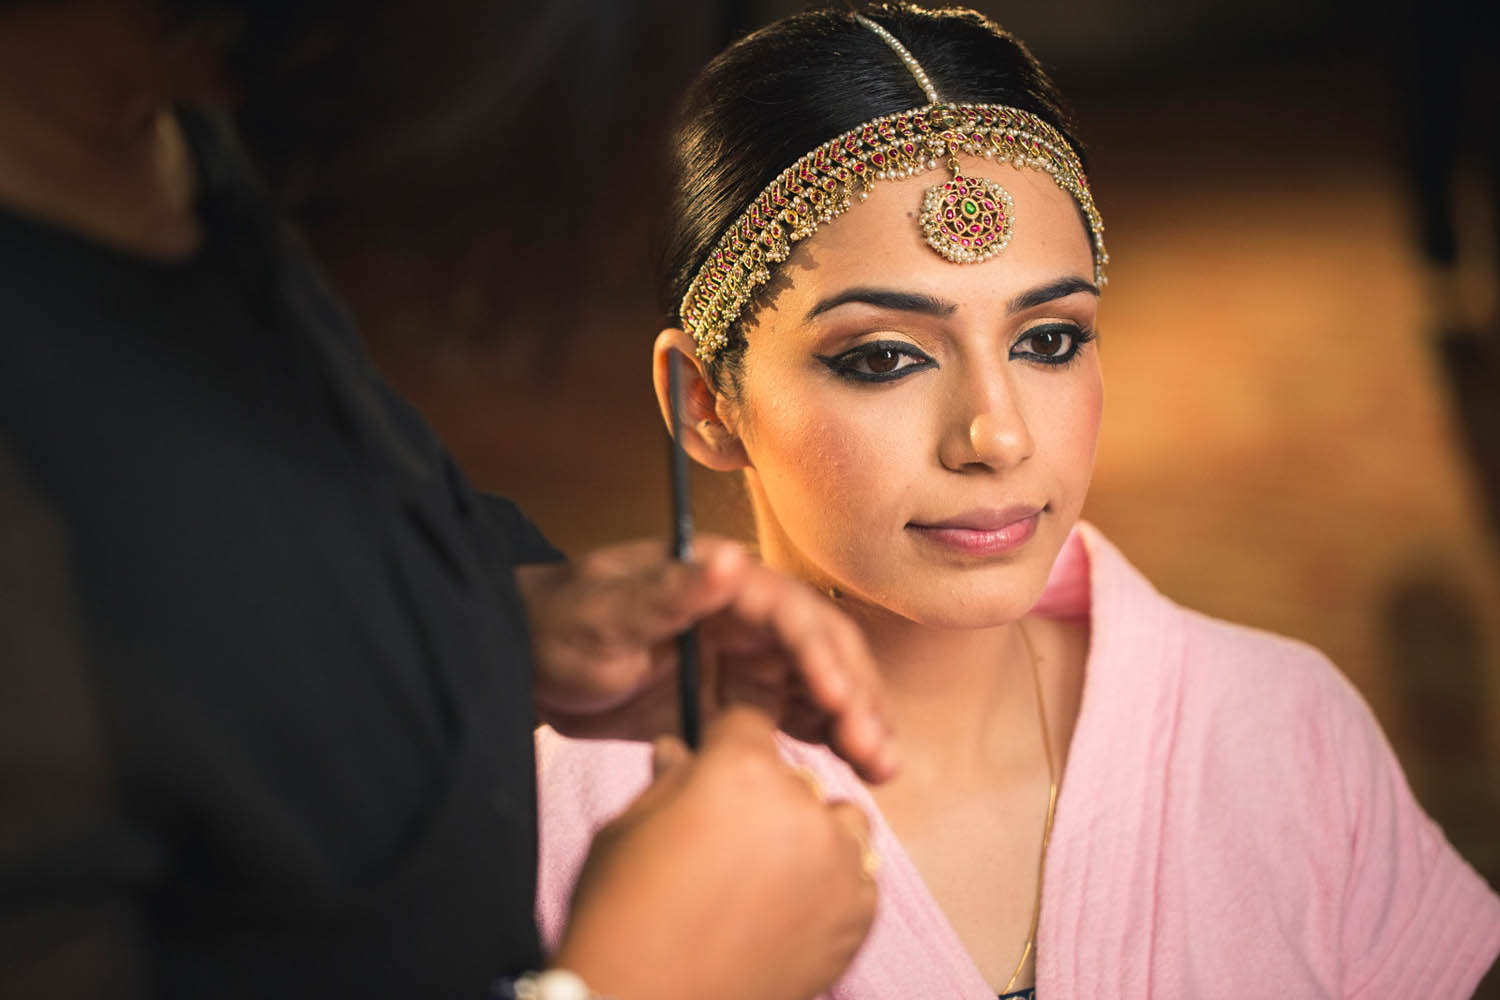 band_baja_bride_ndtv_18.jpg